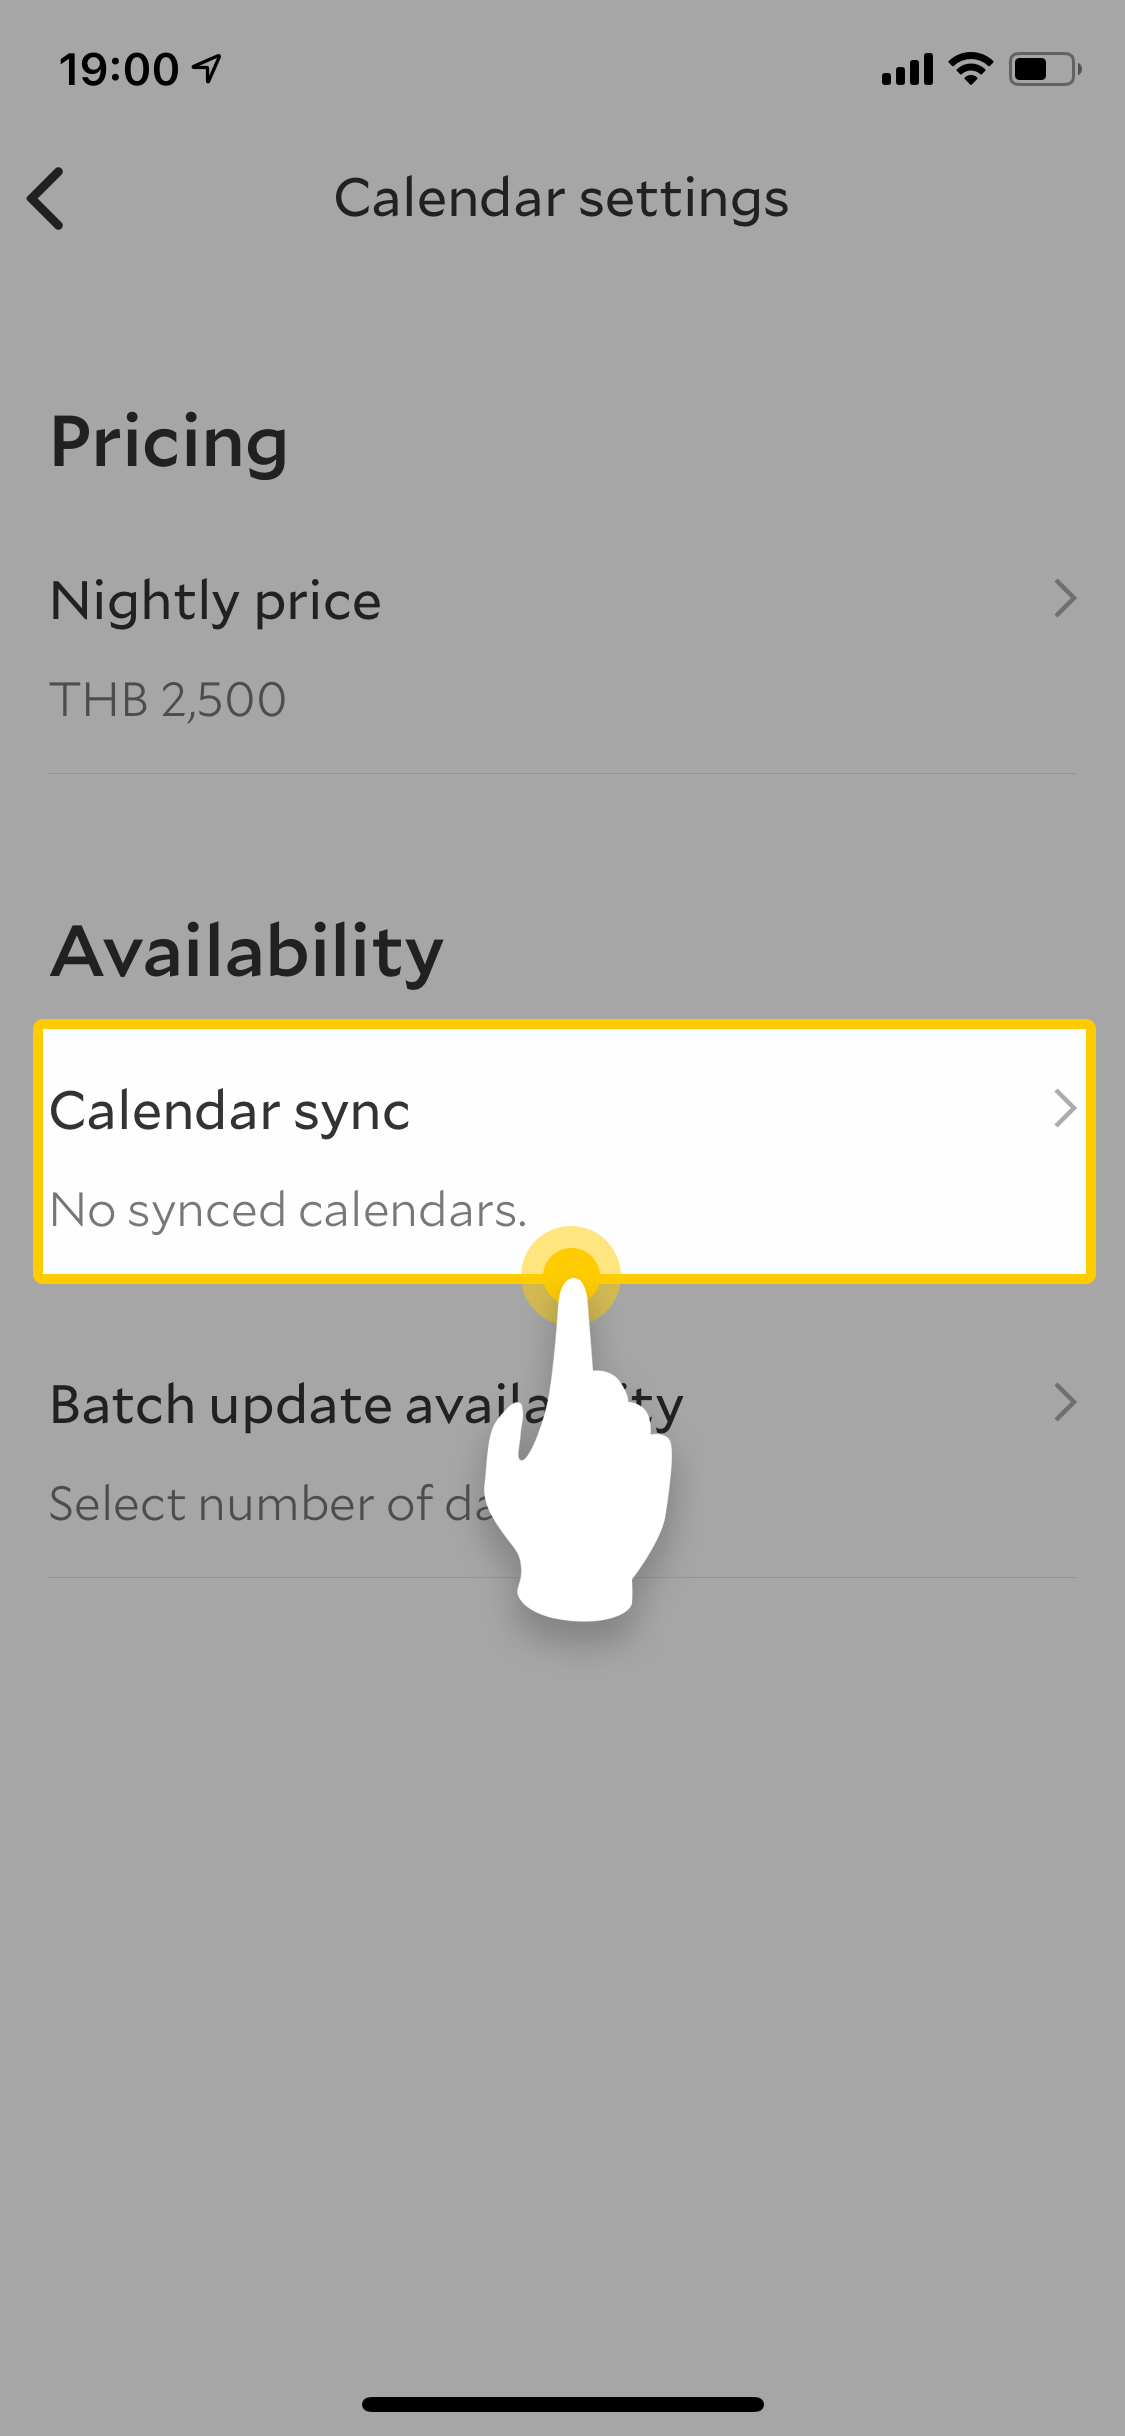 20.Set_which_days_can_be_booked_and_sync_your_calendar_with_other_platforms_5.jpg